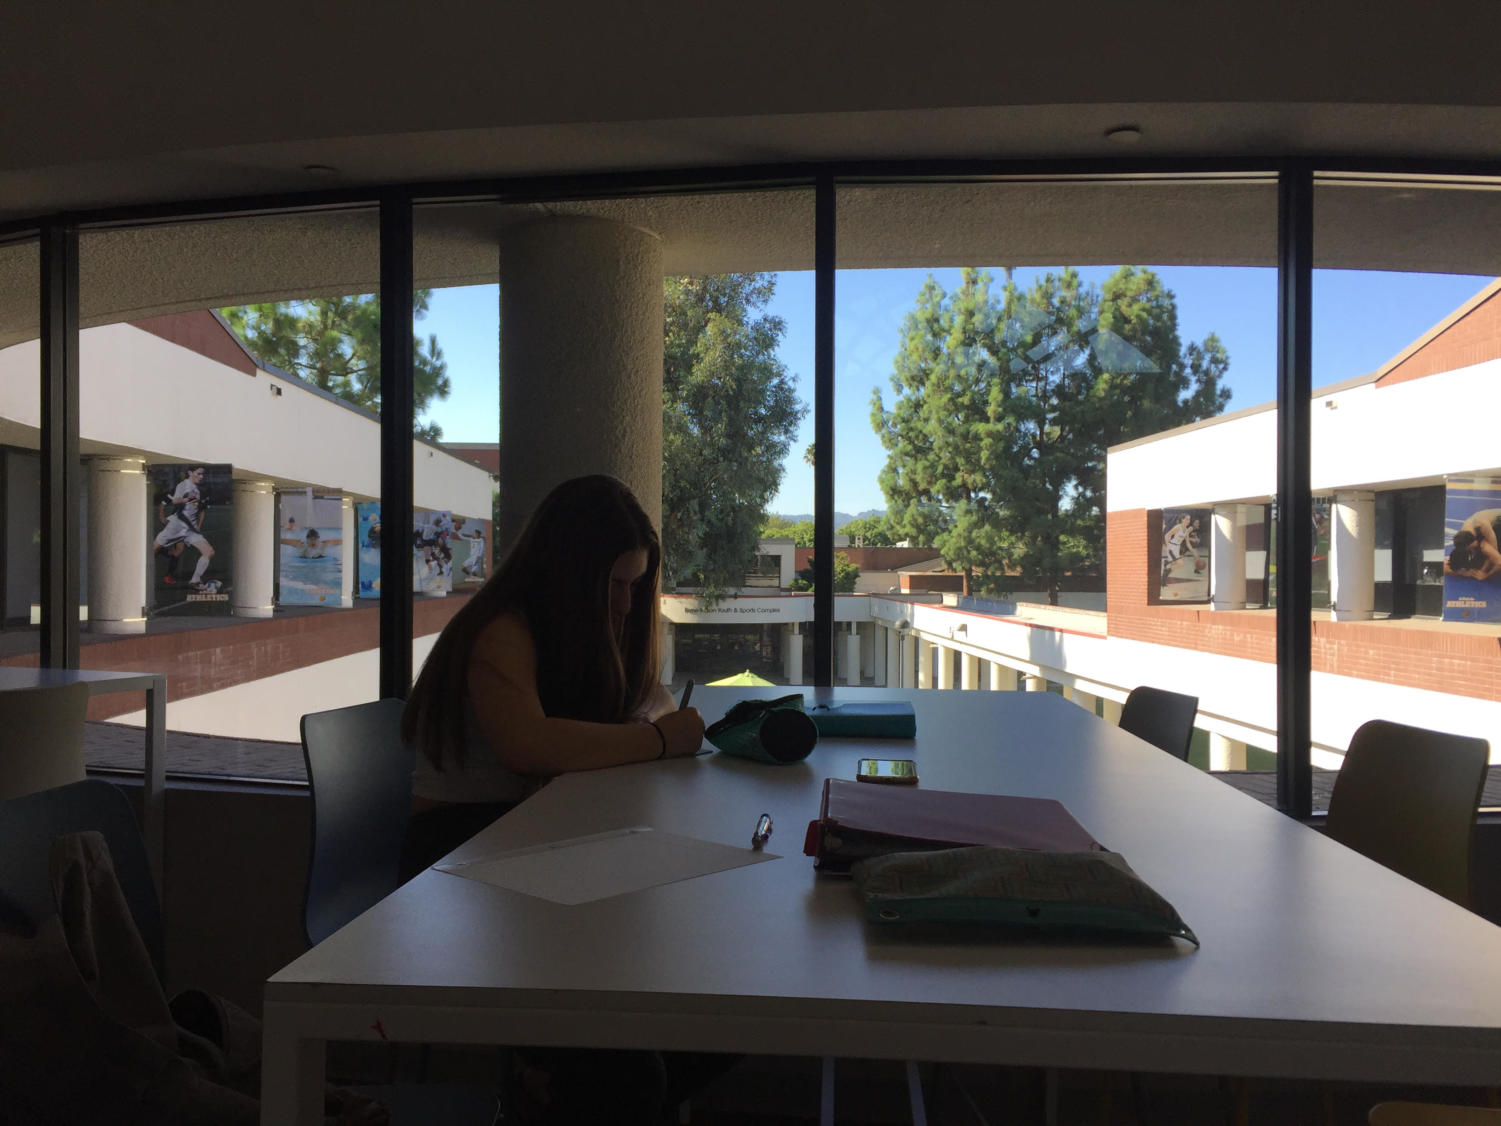 Students are already studying hard on their first days back to school.